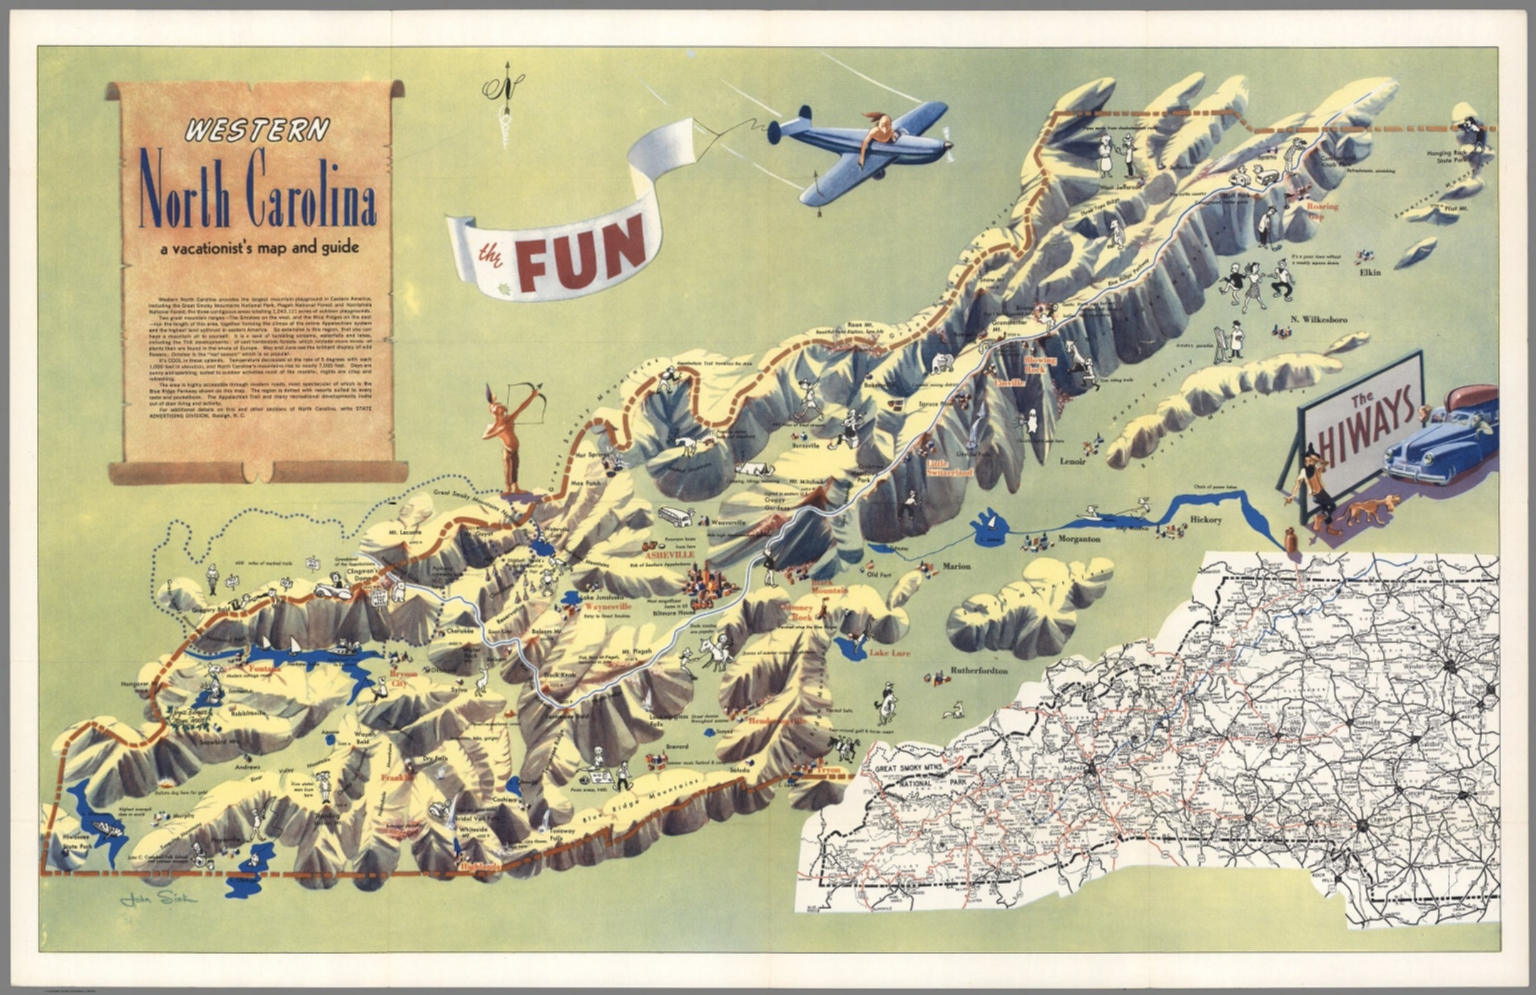 Western NC_A-Vacationist's-Map-and-Guide.jpg